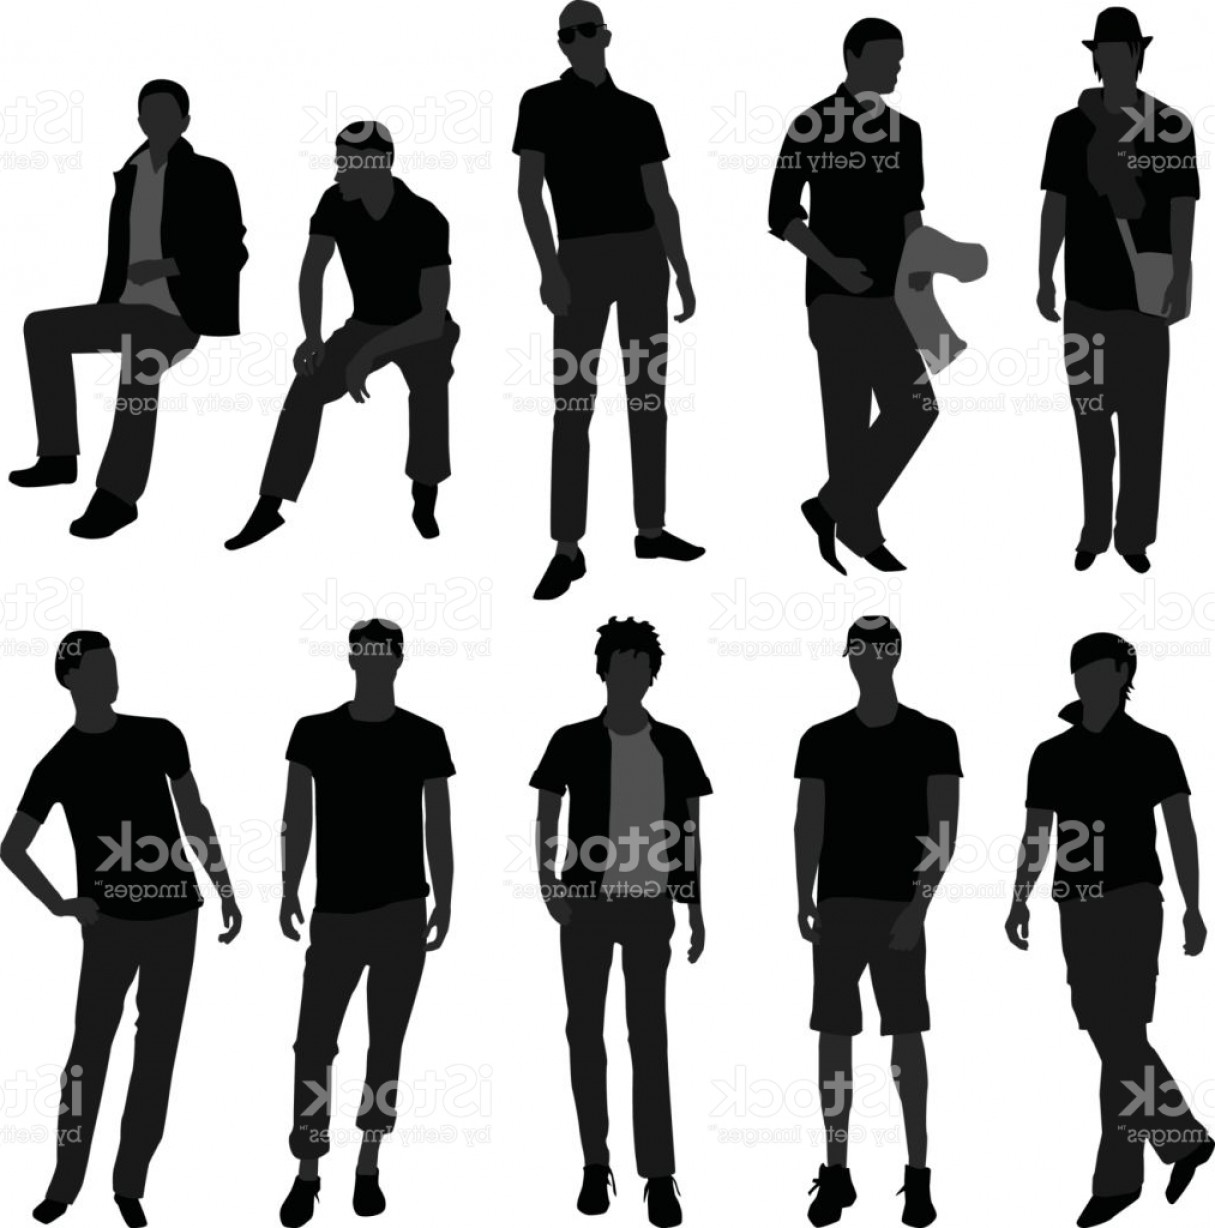 Male Silhouette Vector Art: Male Model Posing For Fashions In Silhouette Vector Gm